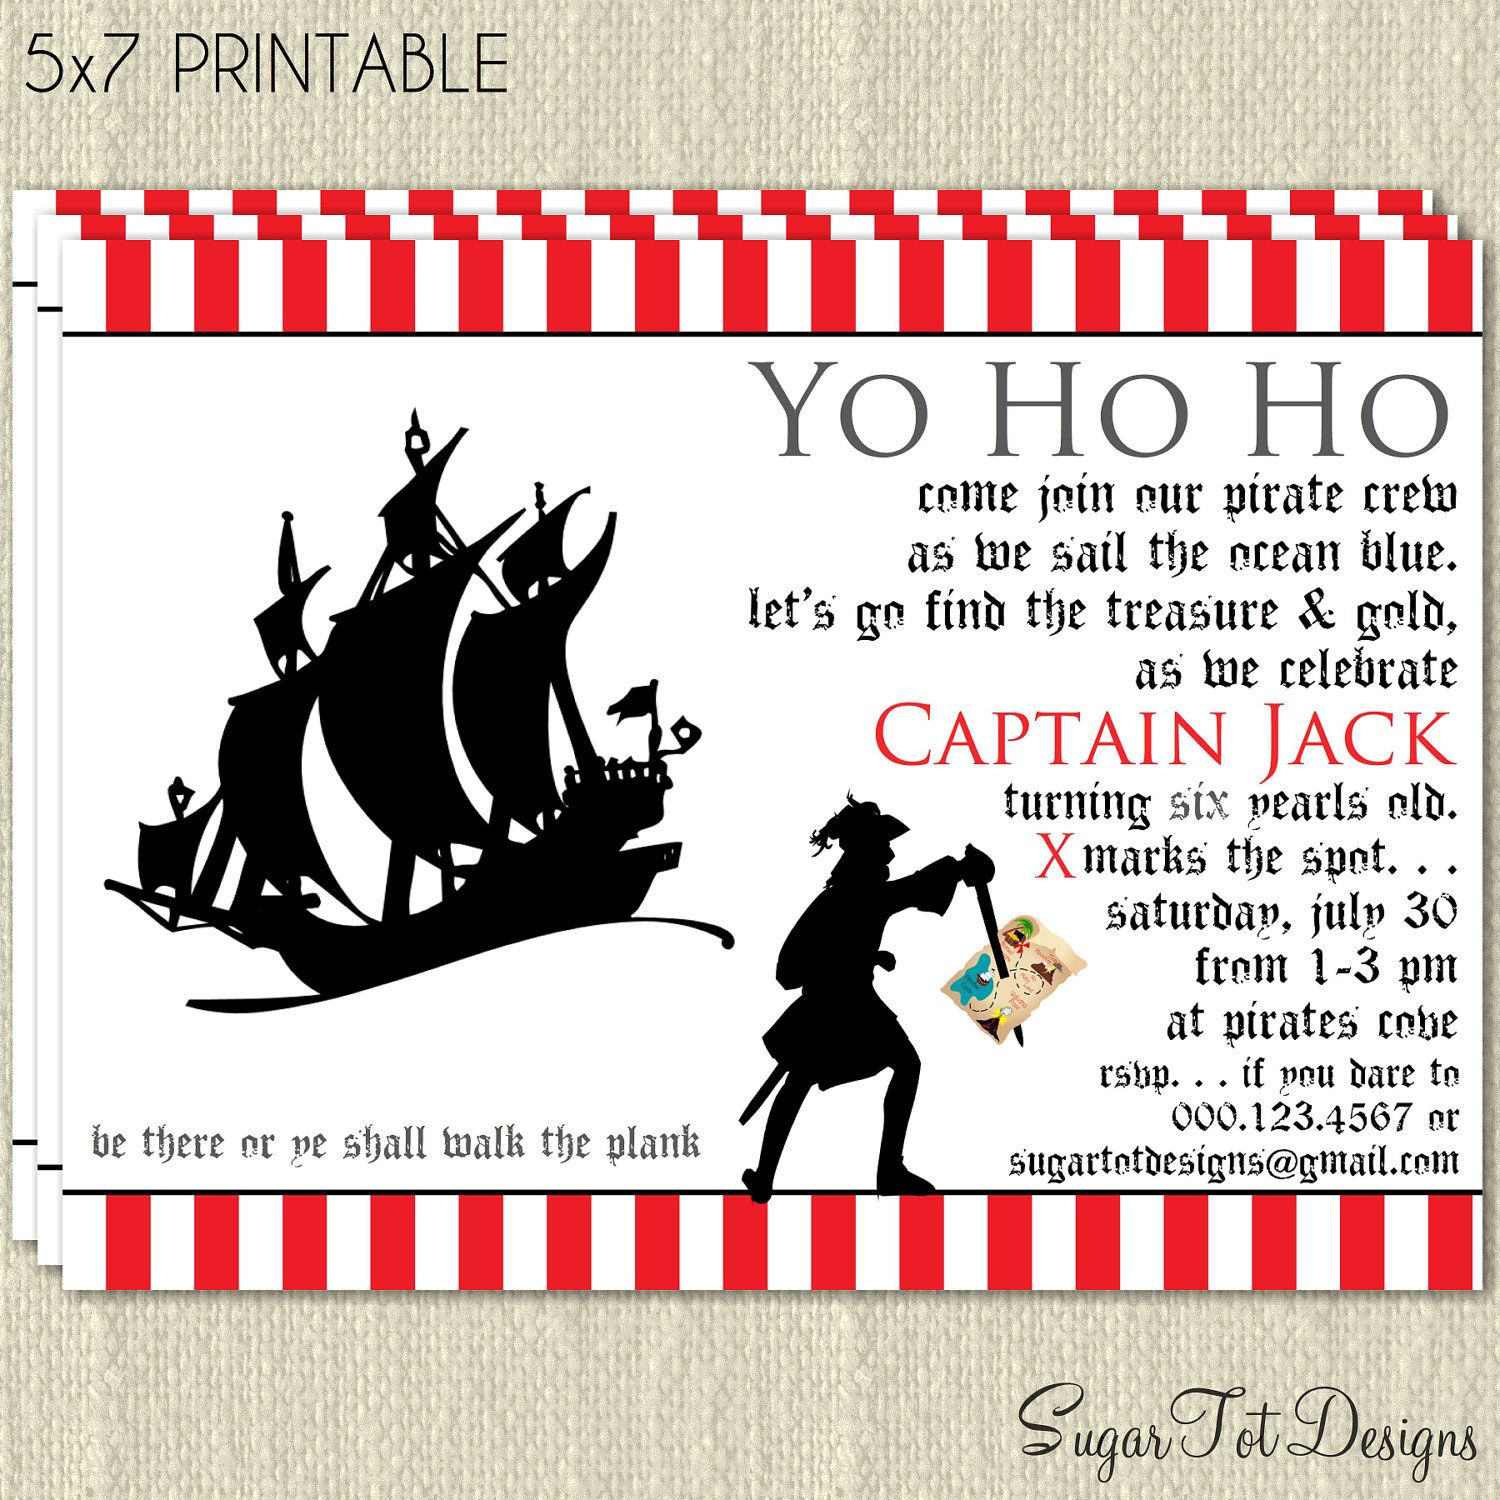 Pirate invitation pirate birthday party invitation hidden pirate invitation pirate birthday party invitation hidden treasure birthday party invitation modern pirate stopboris Choice Image